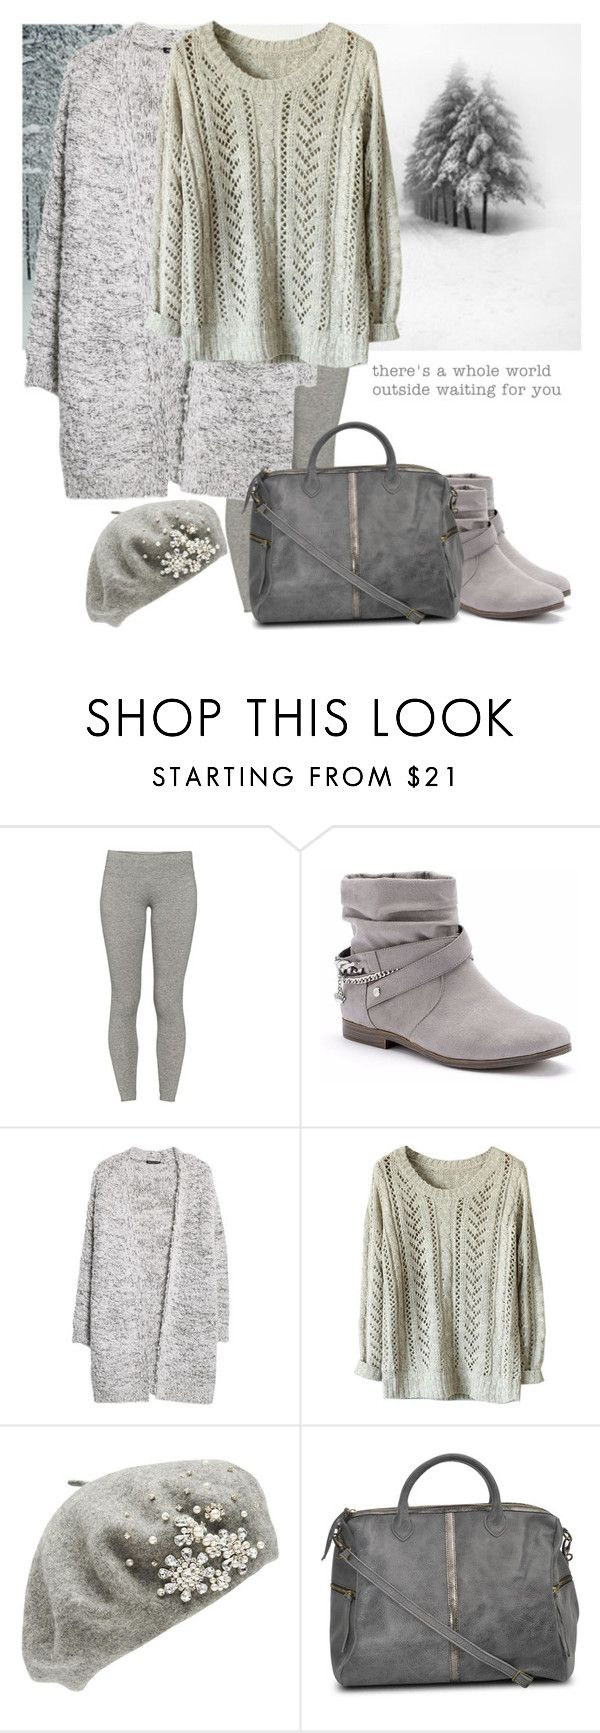 """""""Outfit"""" by hyperactivecold ❤ liked on Polyvore featuring TNA, Juicy Couture, MANGO, Forever New, Aridza Bross, women's clothing, women, female, woman and misses"""